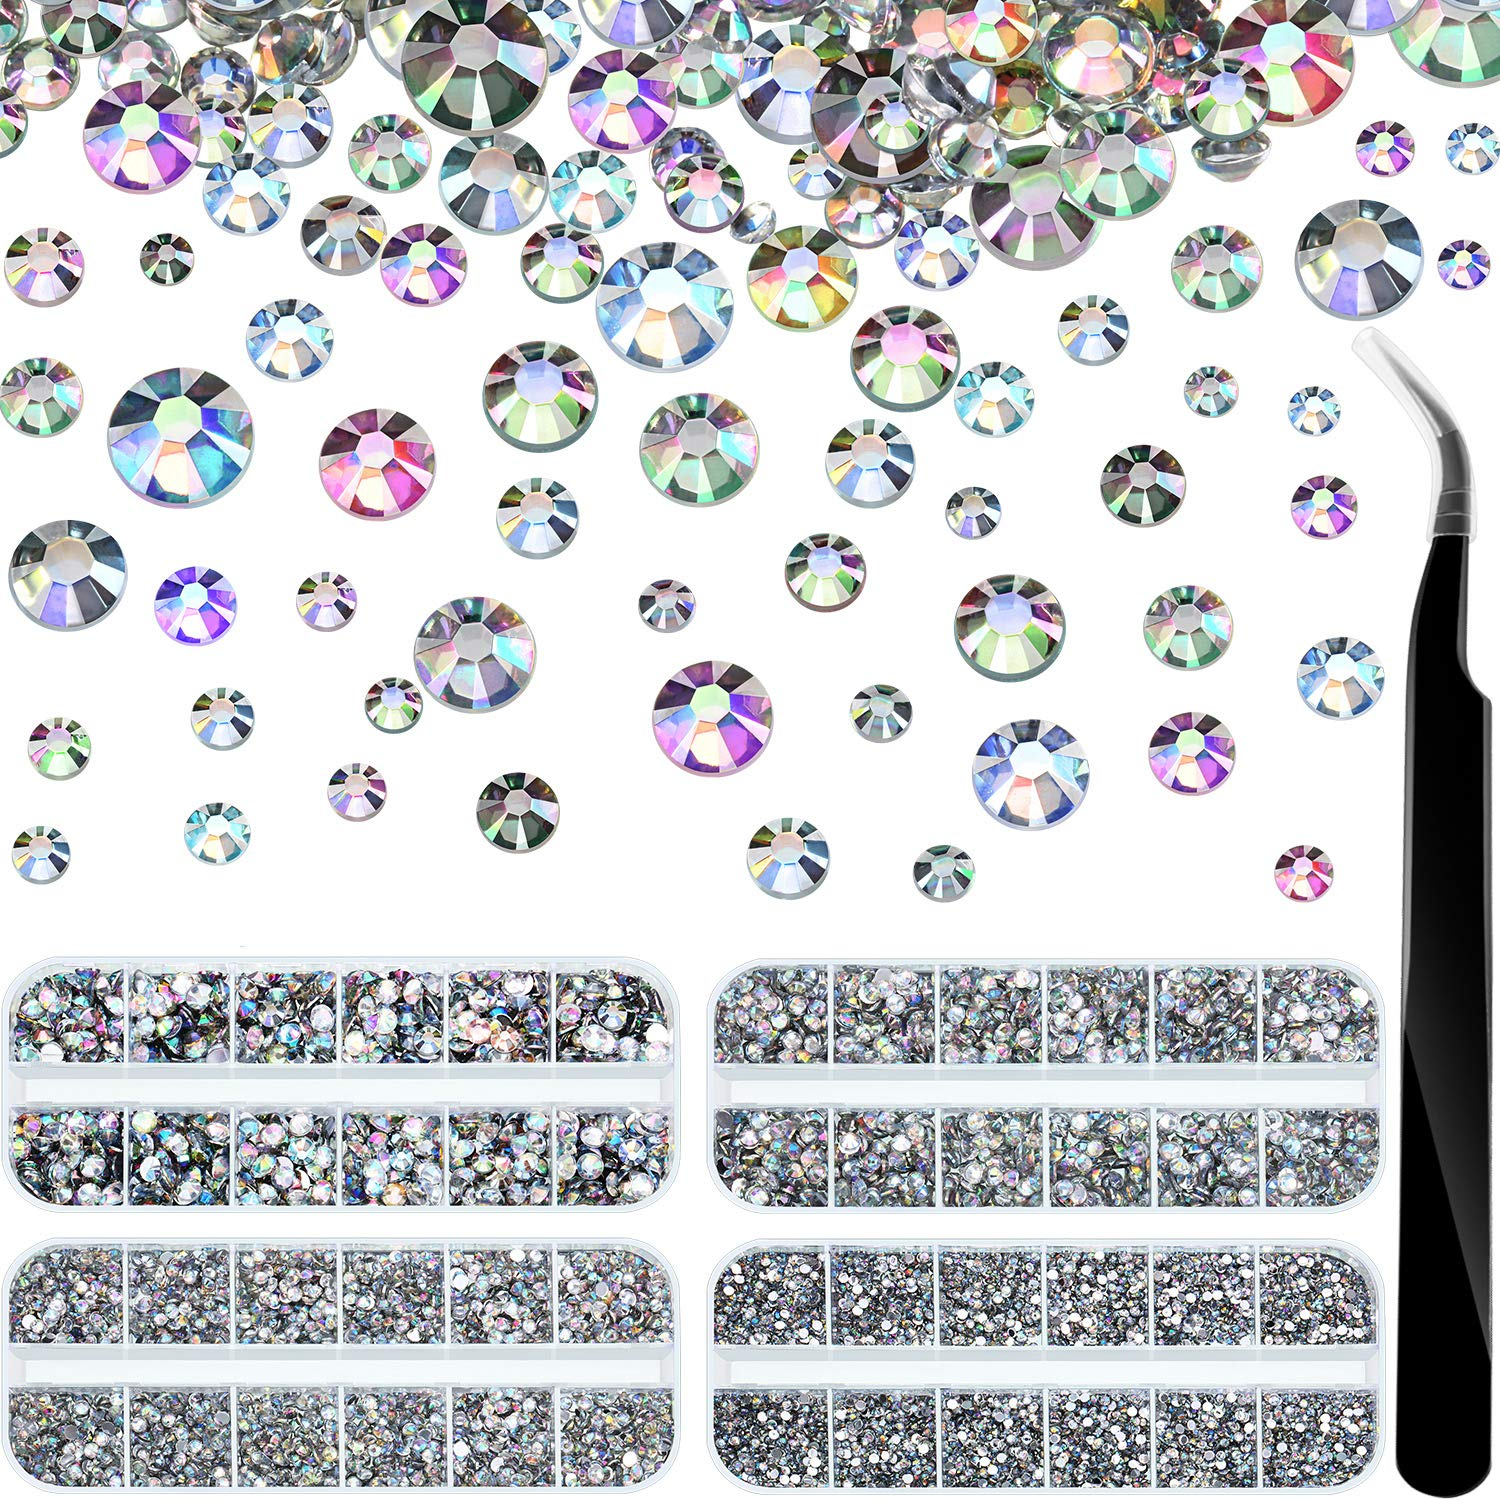 Pangda 9000 Pieces 4 Size Nail Art Rhinestones Set with 4 Boxes Nail Gems and Pick up Tweezer (AB Clear)